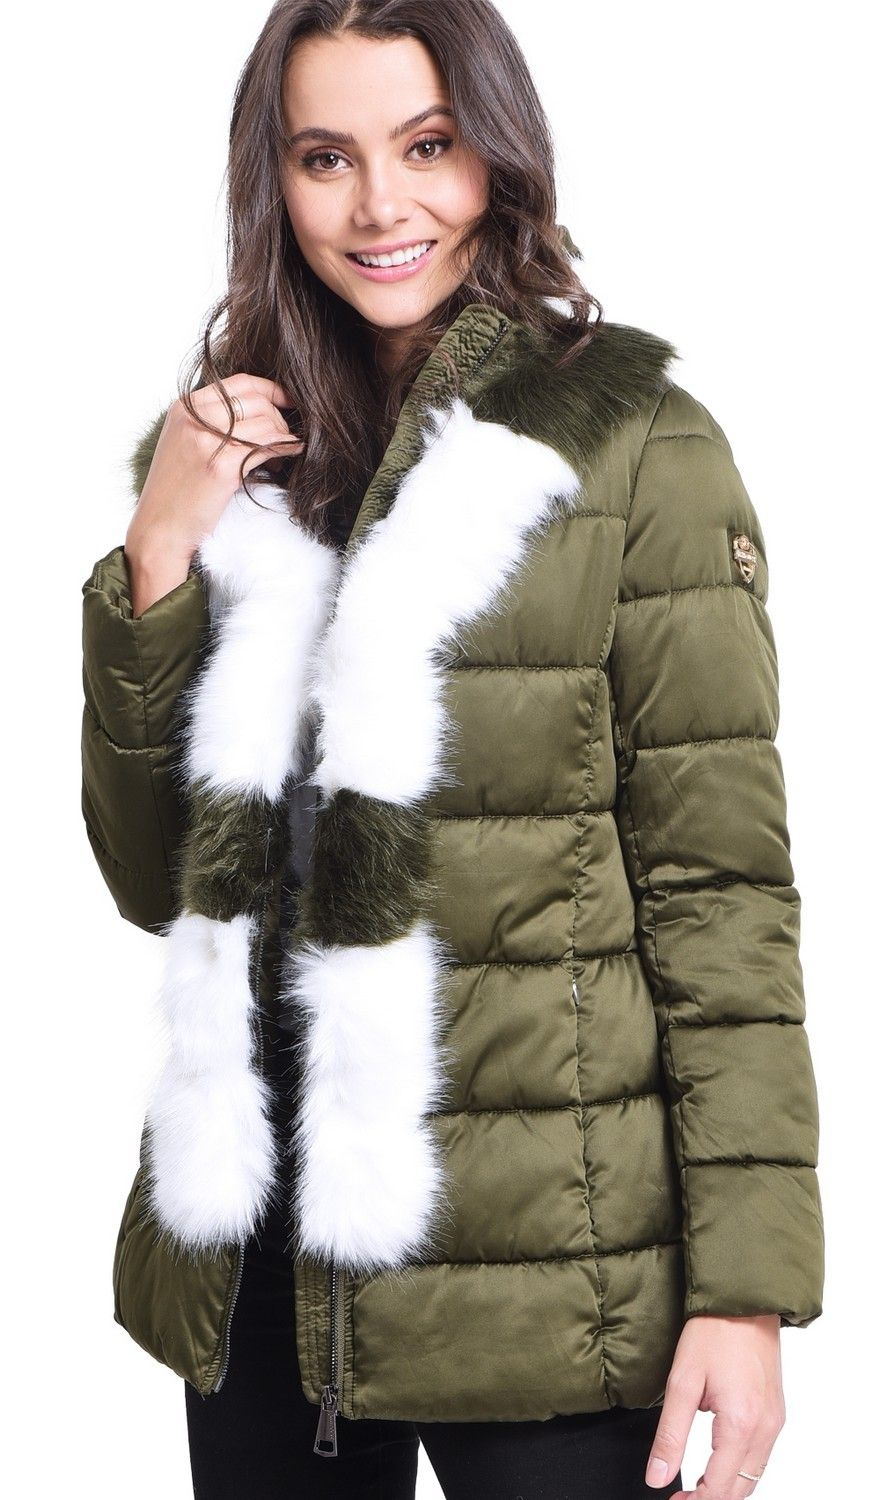 Assuili Mid-Length Puffer Jacket with Faux Fur Panel in Khaki